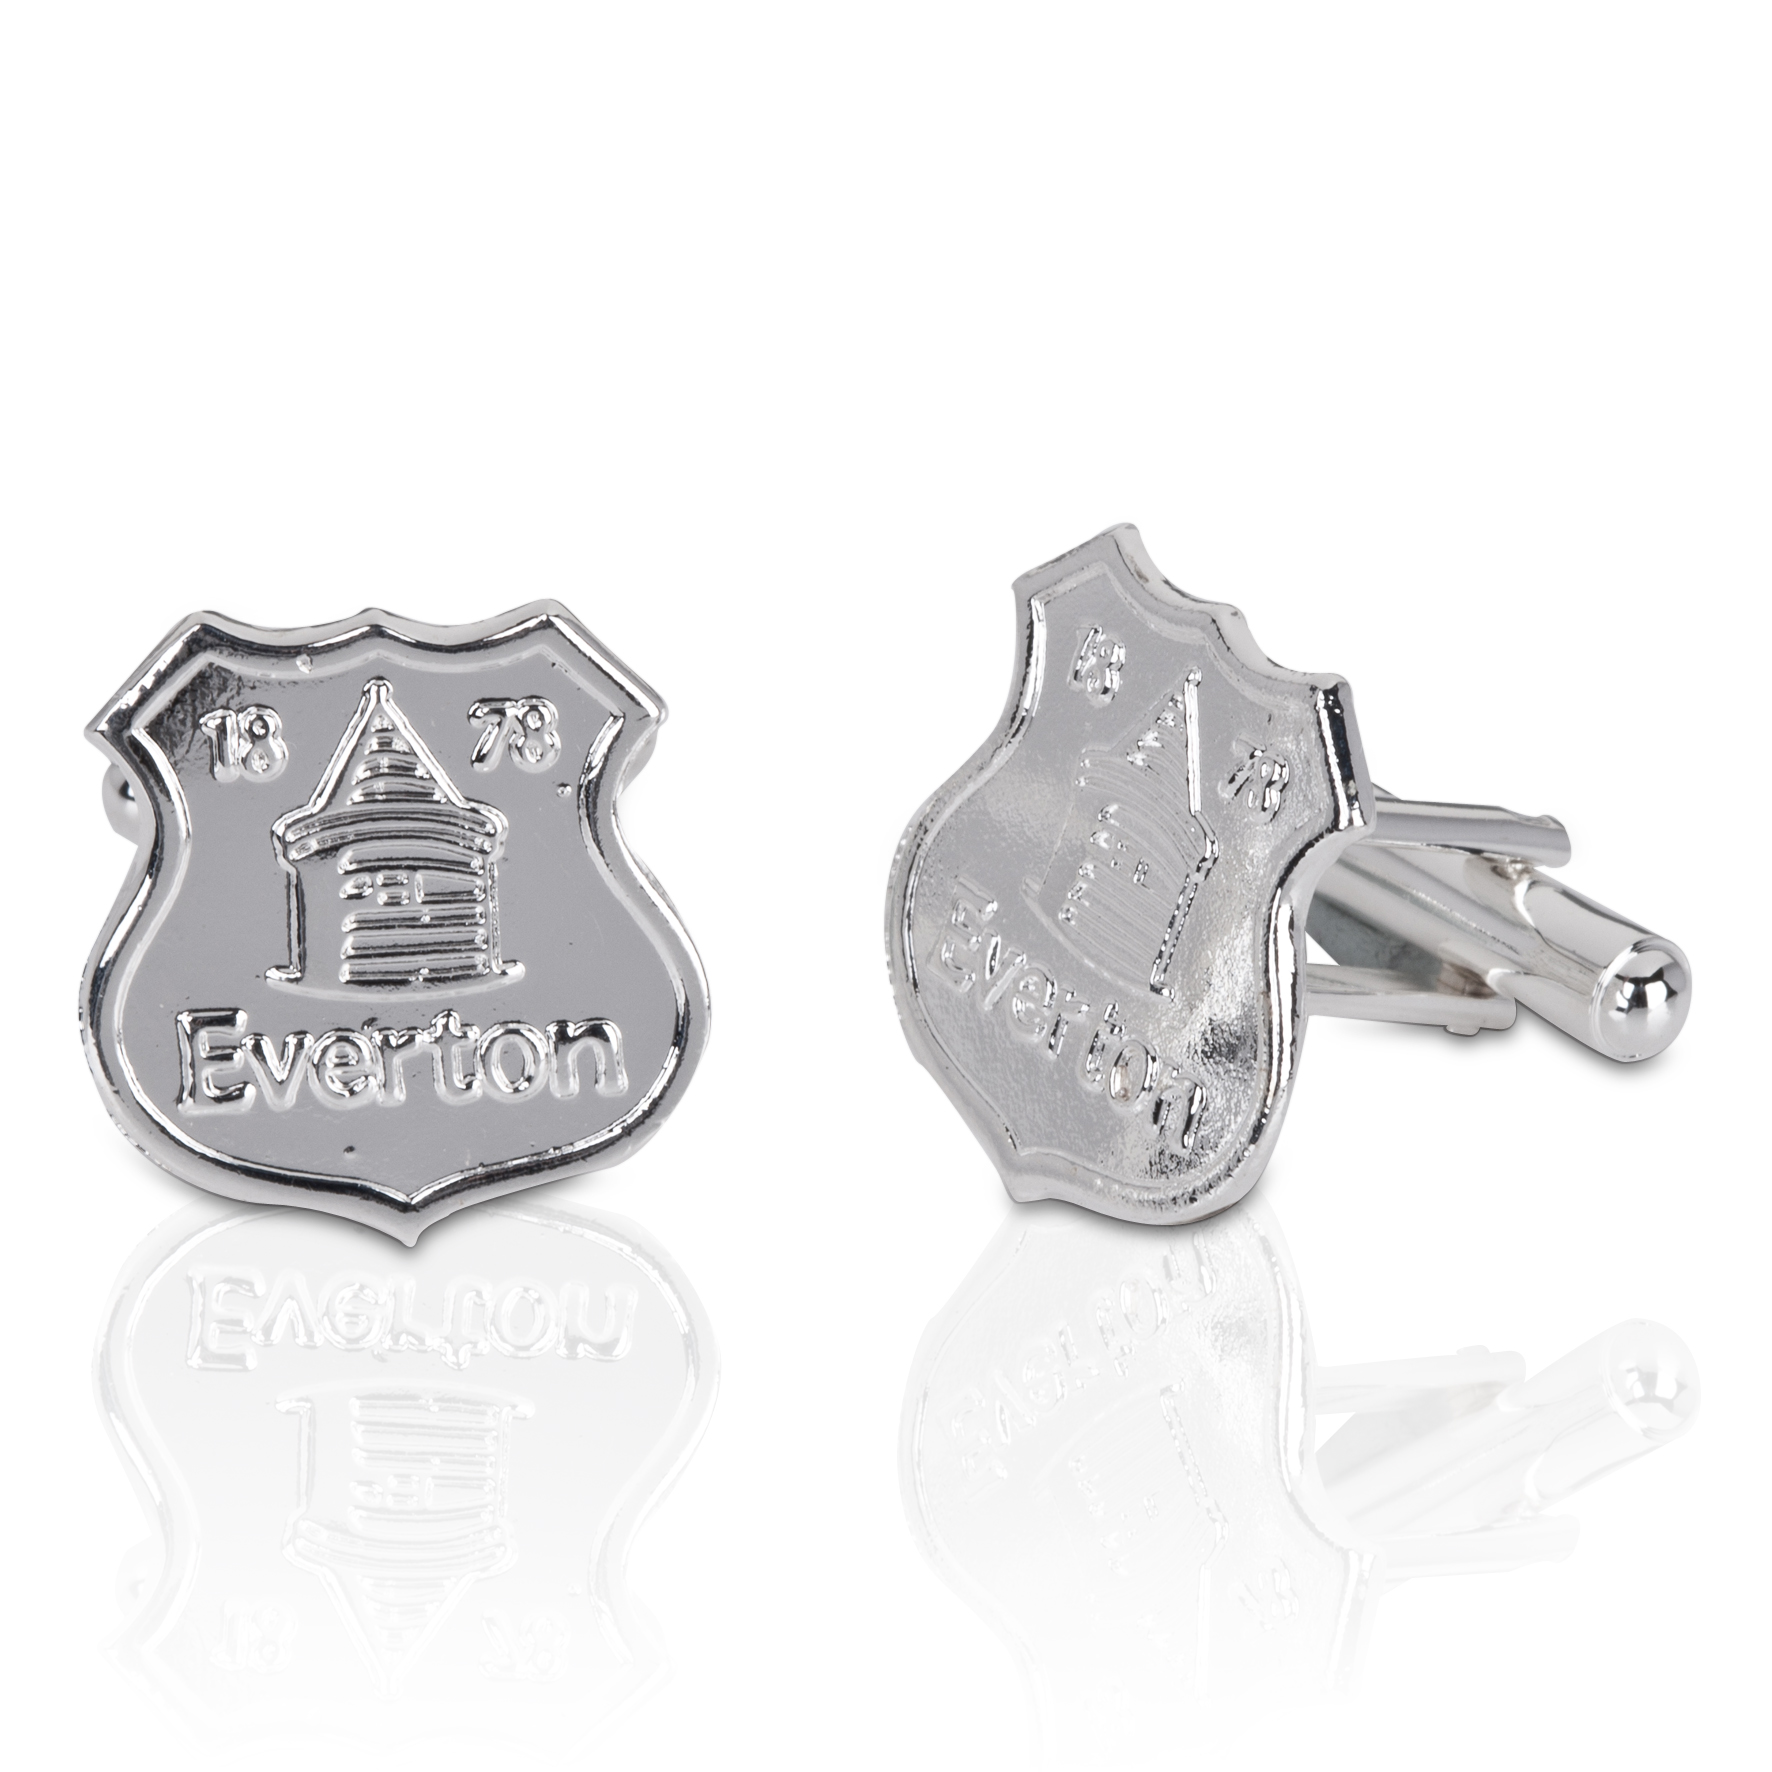 Everton Silver Plated Cufflinks